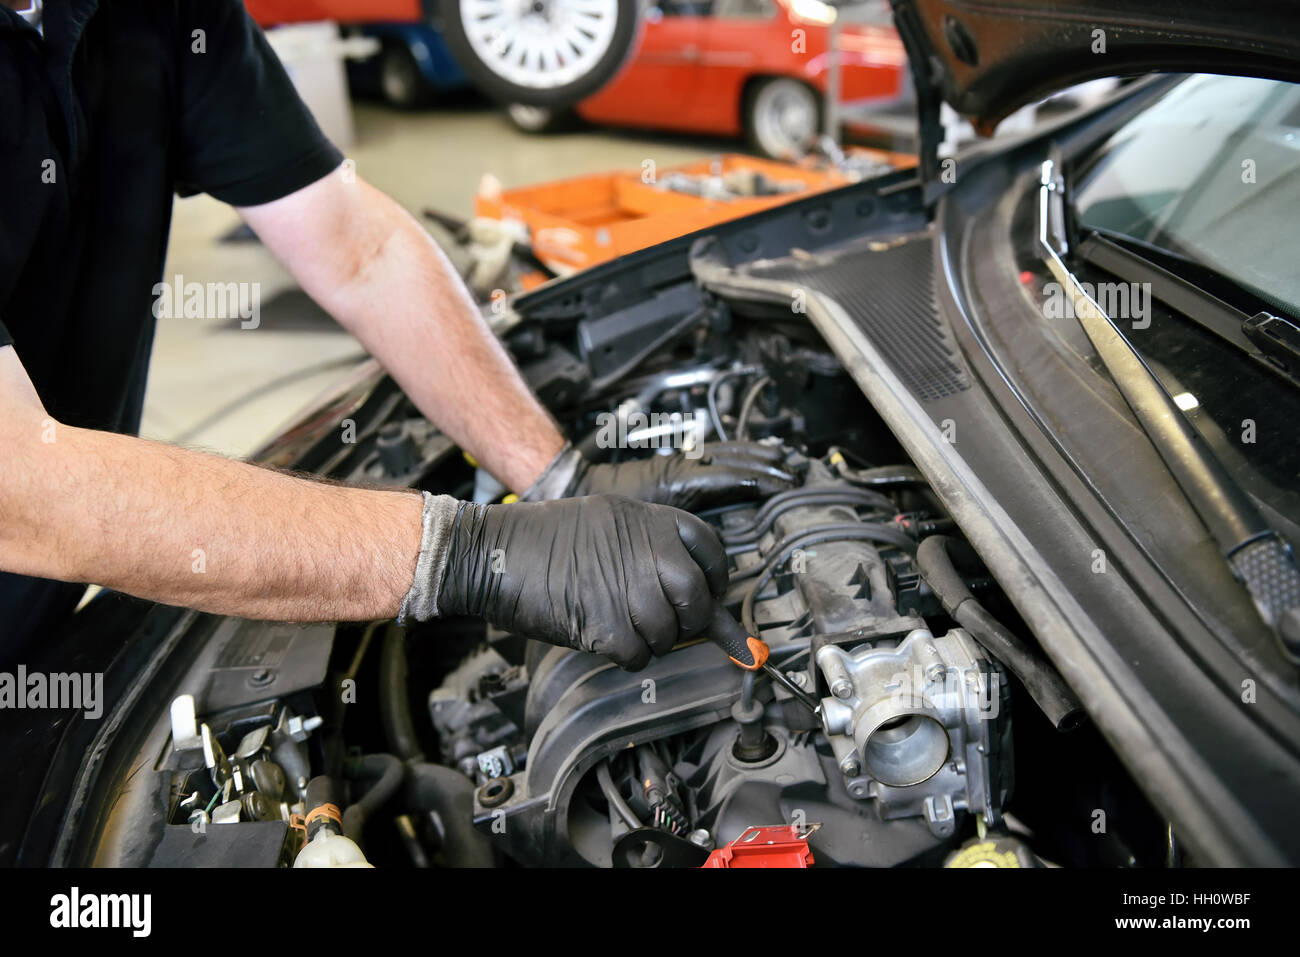 Gloved hands of a mechanic working on a car engine as he services or repairs it in a workshop or garage - Stock Image